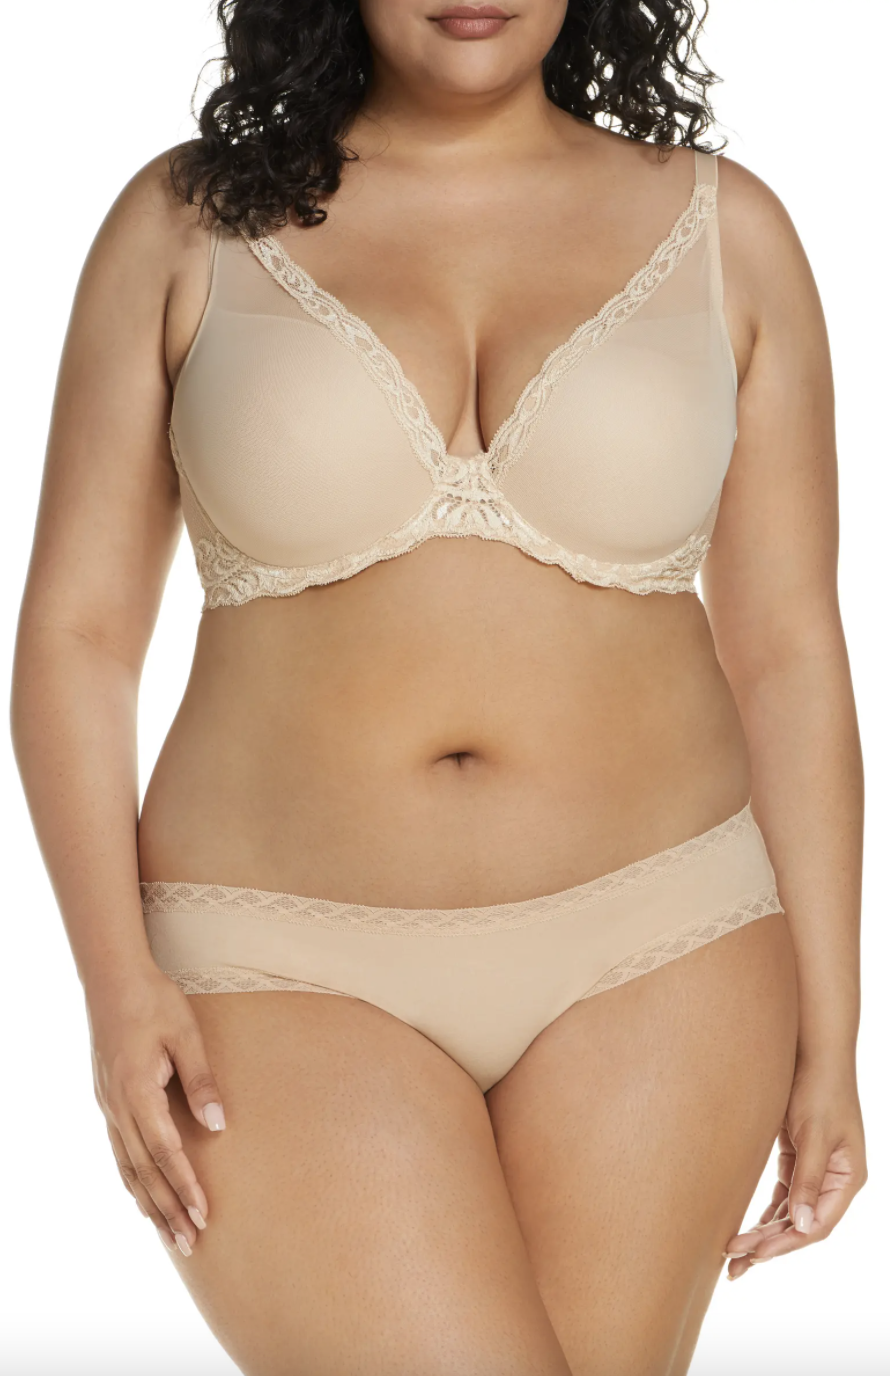 plus size model wearing nude lace bra and nude lace panties